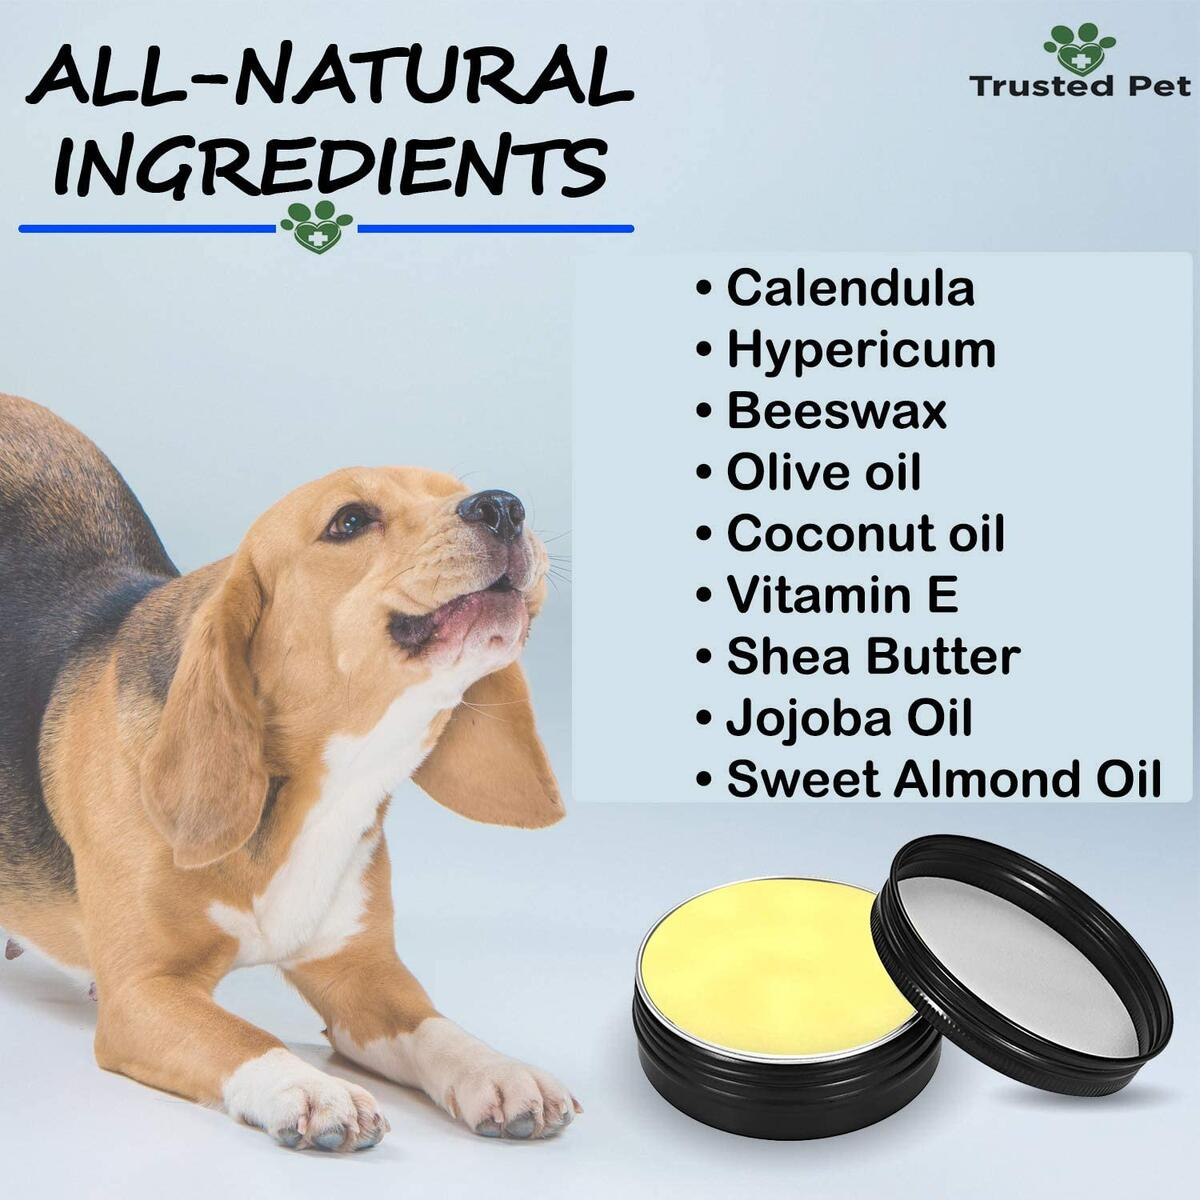 Trusted pet Paw Balm - 100% Natural Paw Soother for Dogs and Cats - Paw Pad Moisturizer, Nose Balm, Dog Elbow Protector with Beeswax, Vitamin E, Coconut Oil - 2 oz